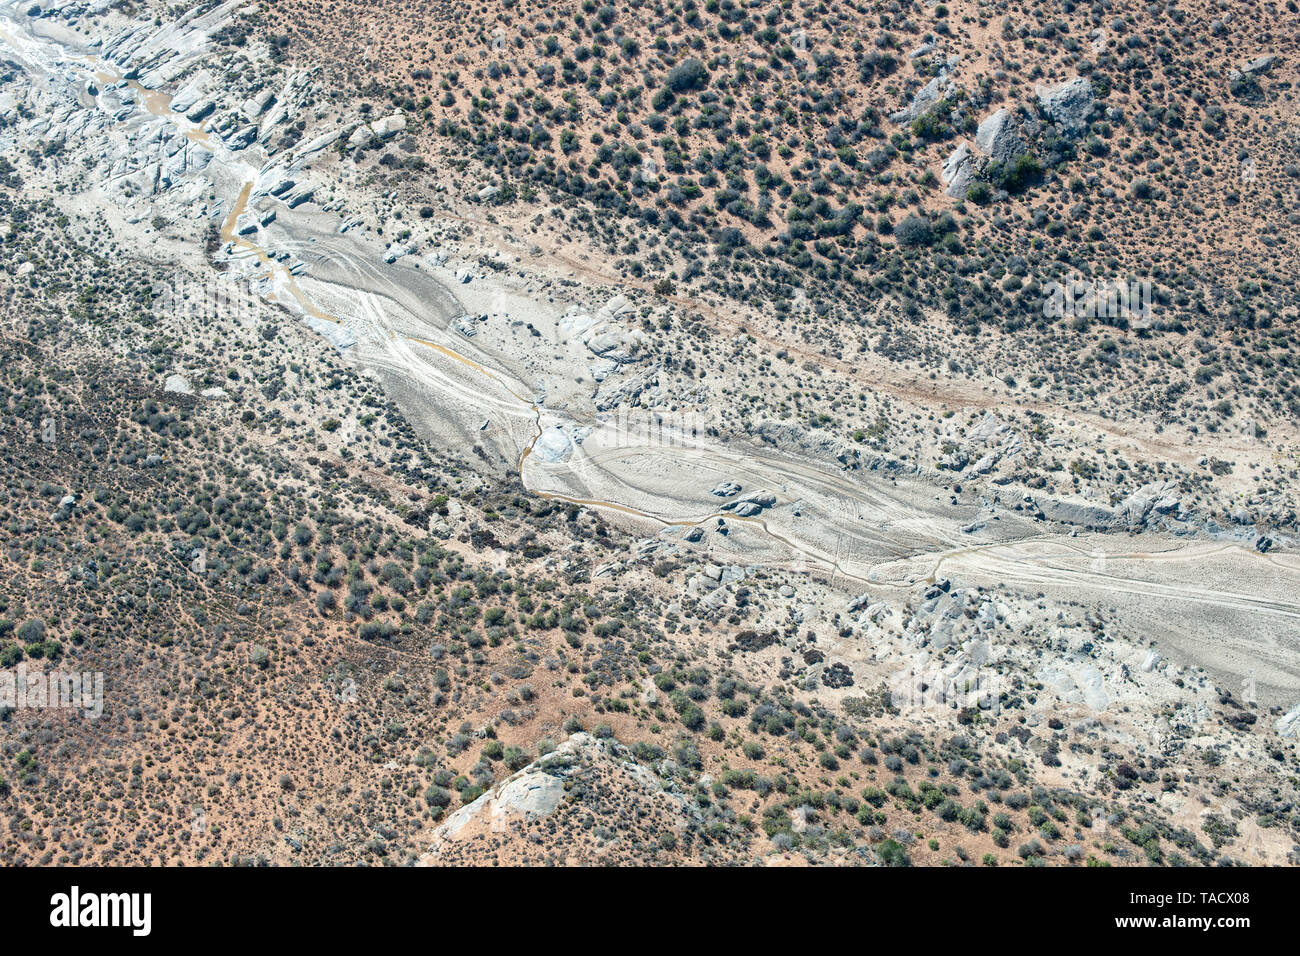 Aerial view of the dry river bed of the Swartlintjies river in the Namaqua National Park in the Northern Cape Province of South Africa. Stock Photo